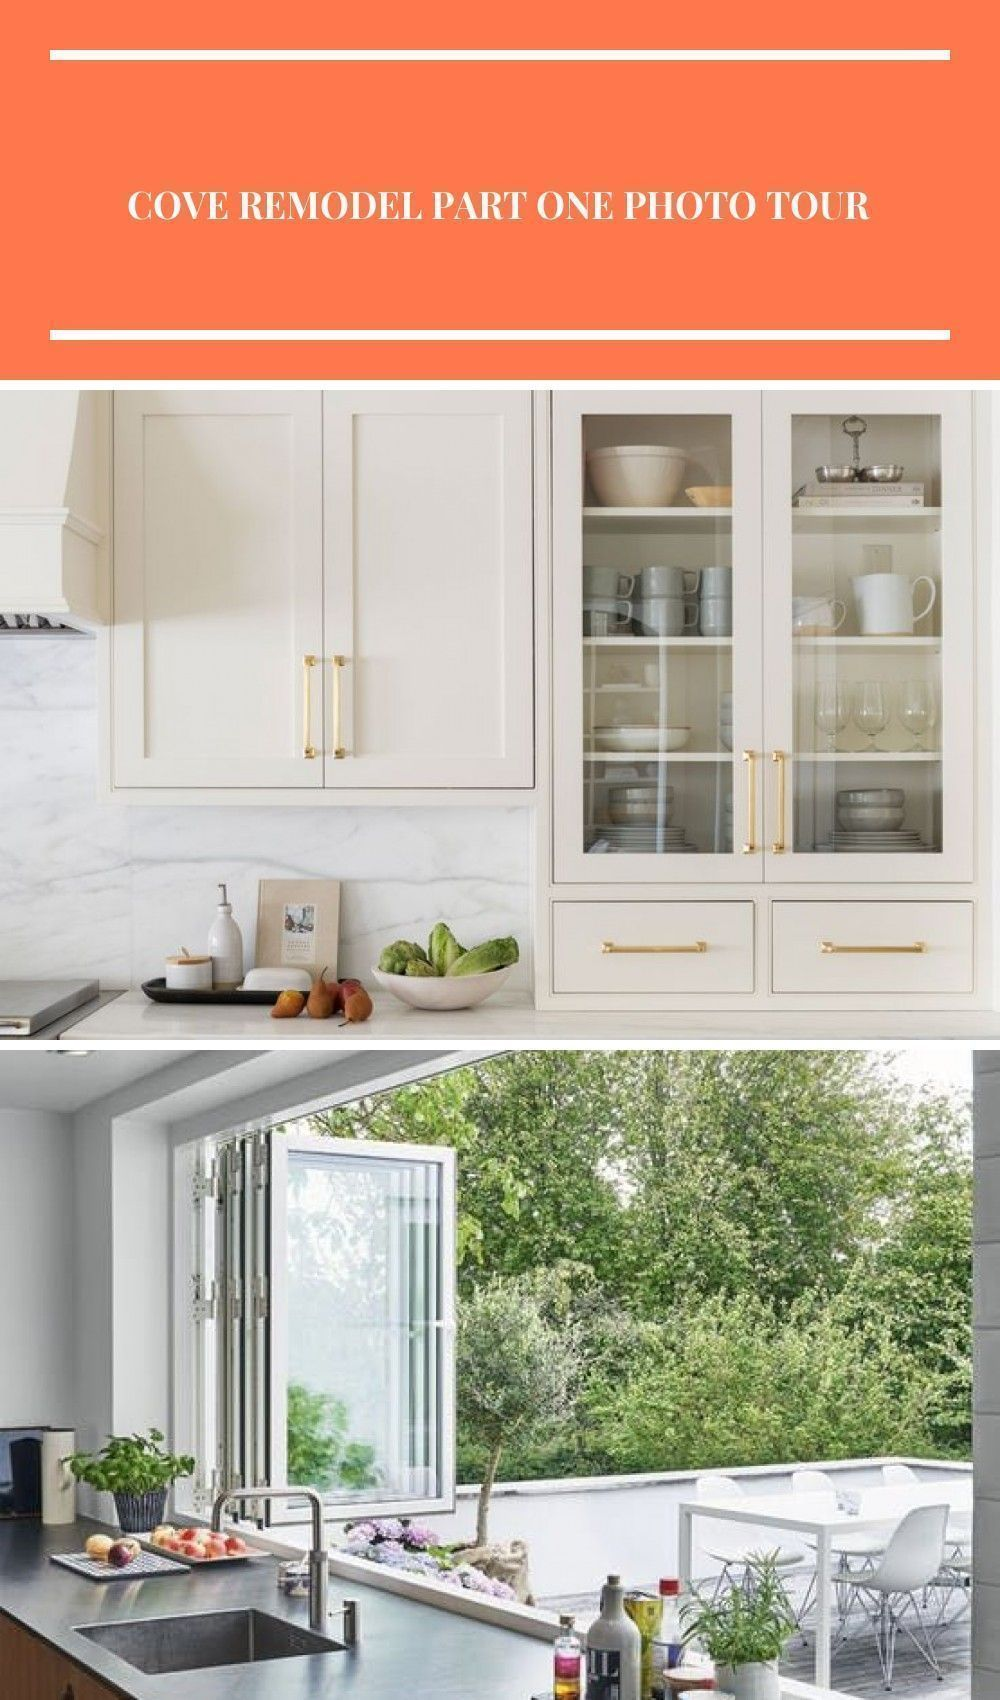 Kitchen Cabinets In Creamy White Swiss Coffee Benjamin Moore Kitchen Cove Rem Benjamin Cabinets Co In 2020 Benjamin Moore Kitchen Swiss Coffee Kitchen Cabinets